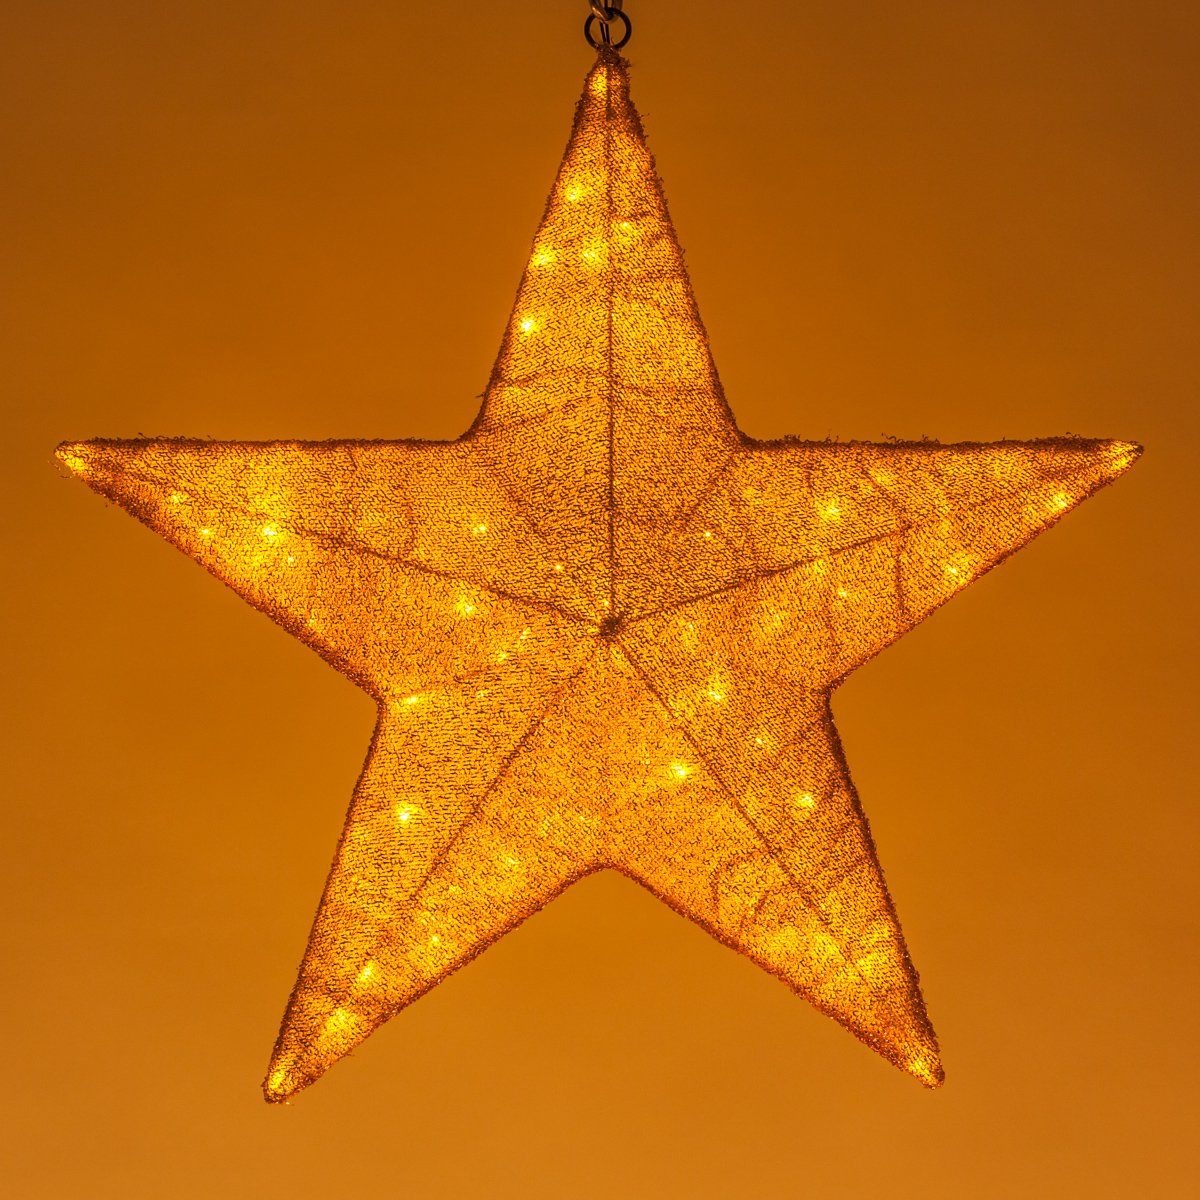 Star Light Decoration, Star LED Light Christmas Decoration – Party Decorations USA Patriotic Decorations; Commercial Decor Light – Party Wedding Decorations, Big Star Light (24 Inch, Gold)